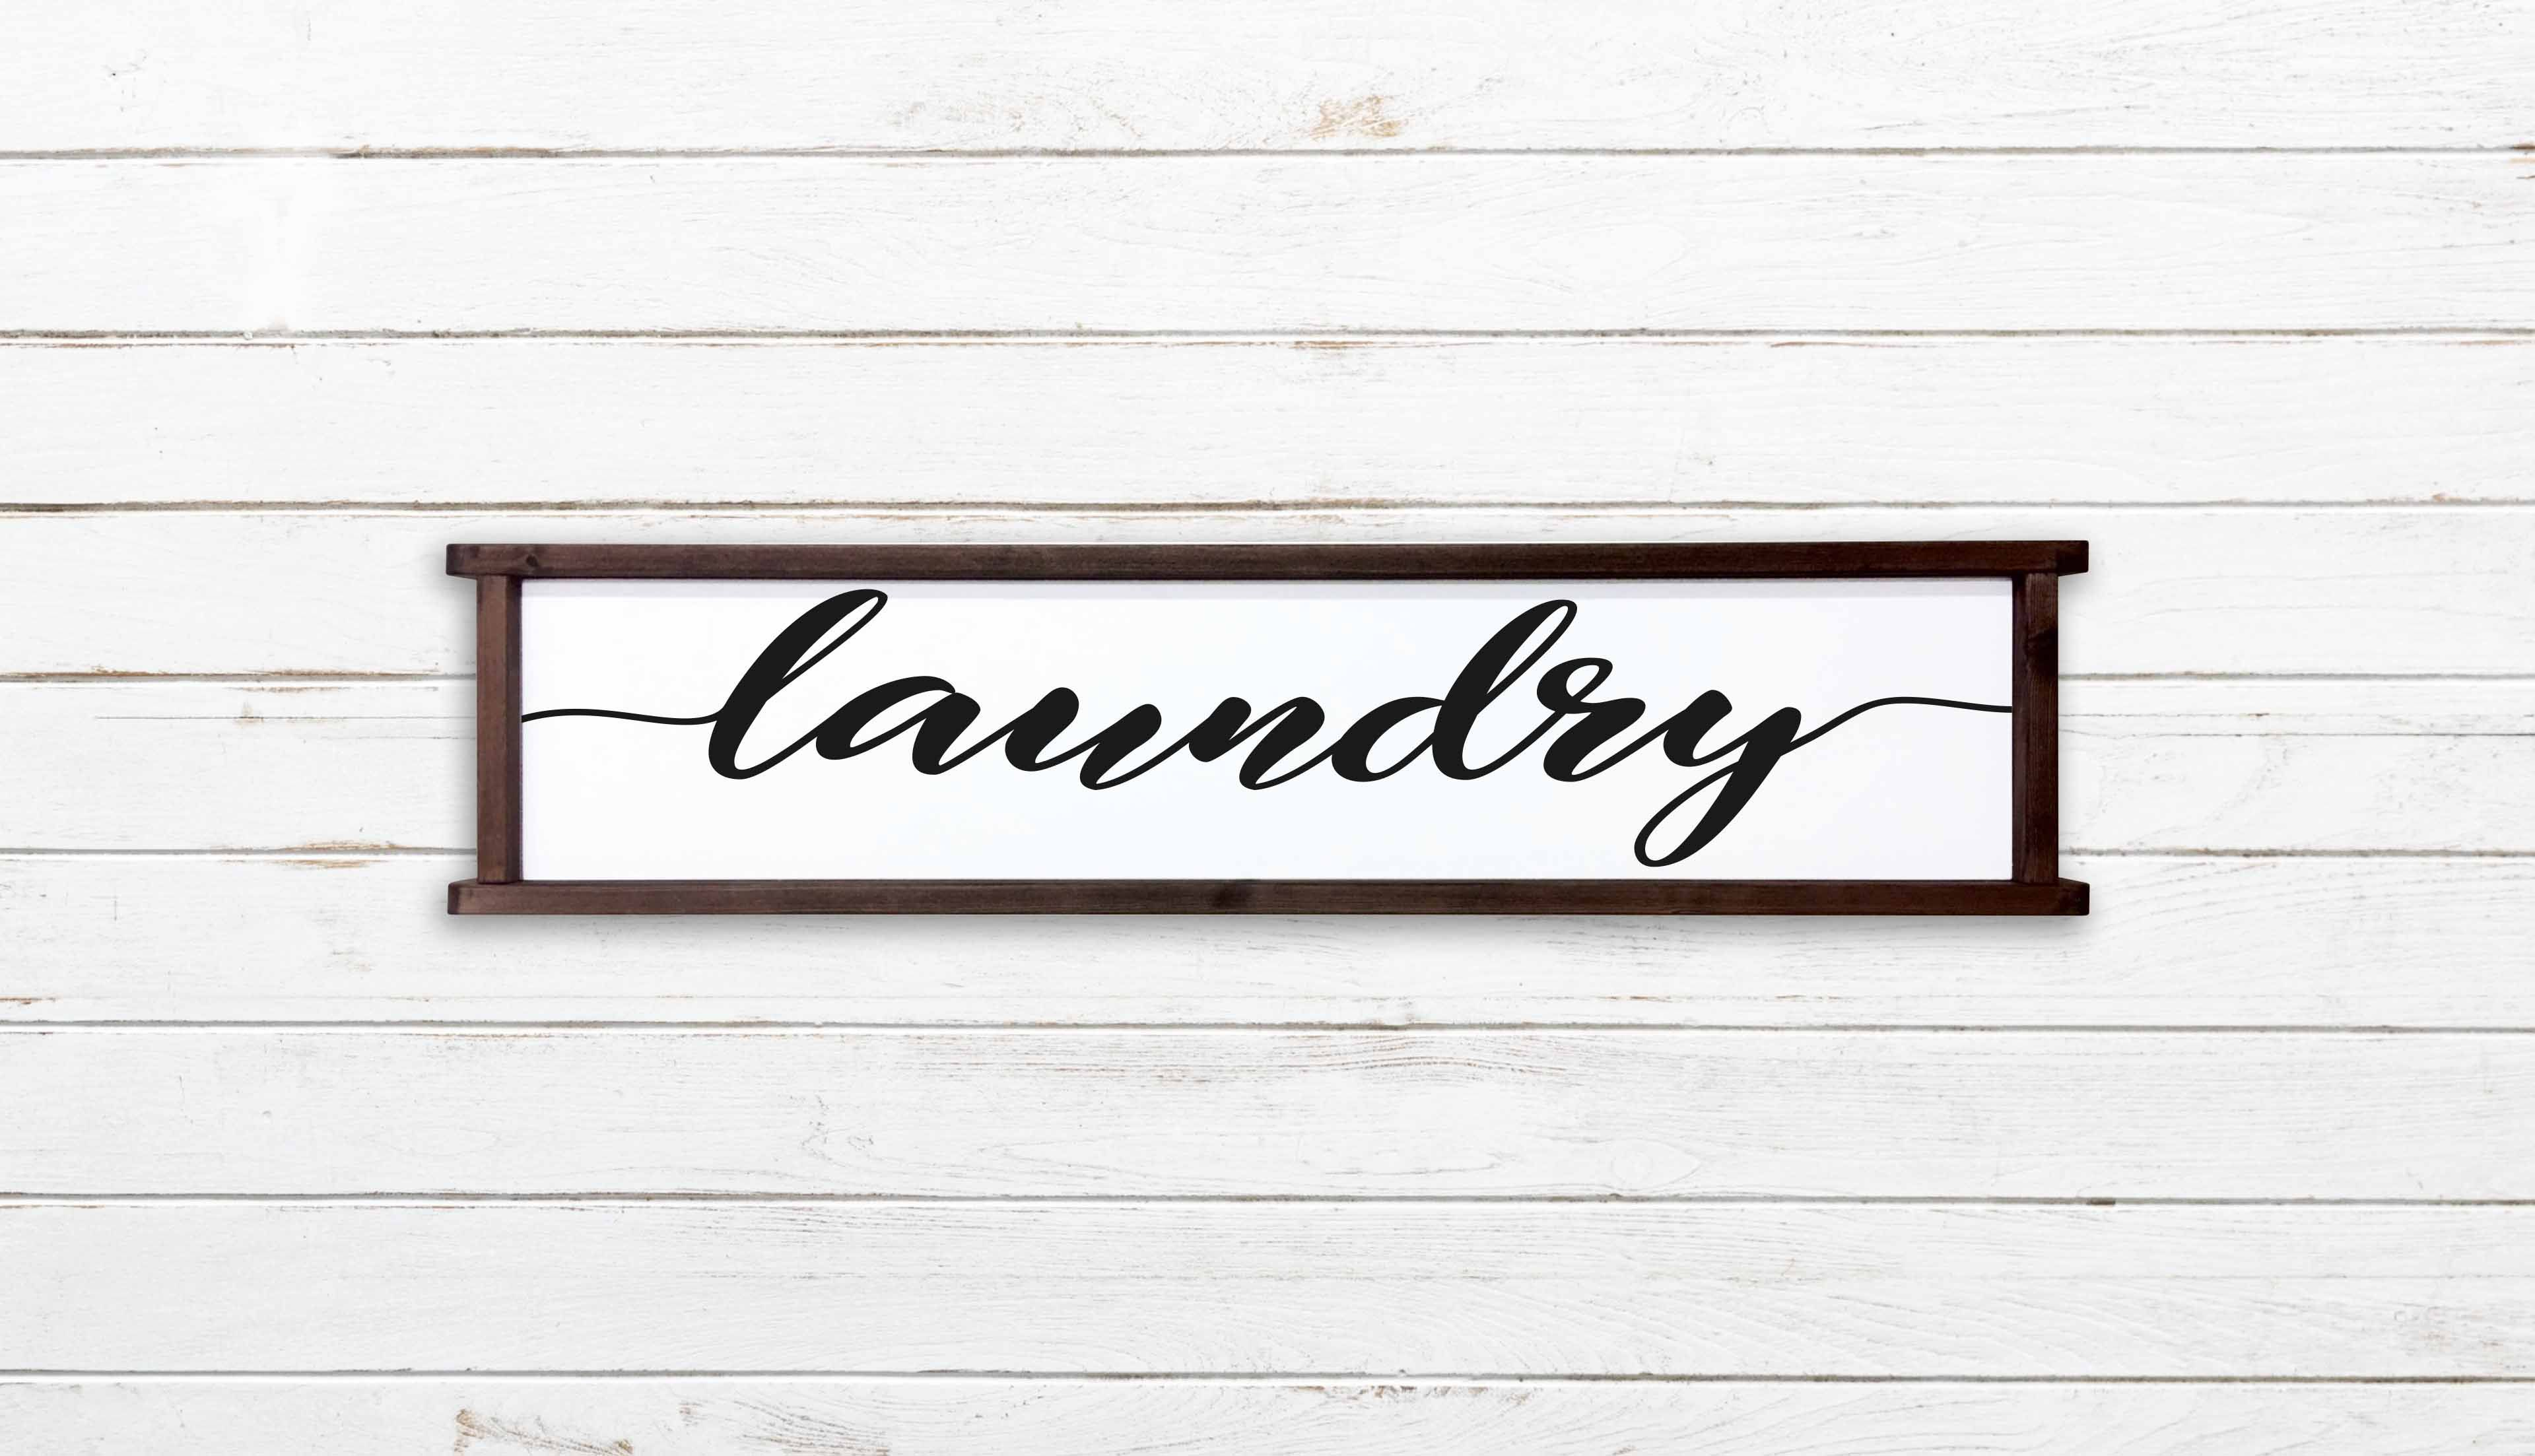 Framed Laundry Sign Rustic Laundry Sign Wood Laundry Sign Wooden Laundry Sign Laundry Room Ideas Laundry Wall Sign Large Laundry Sign Wooden Laundry Signs Laundry Signs Wood Laundry Sign